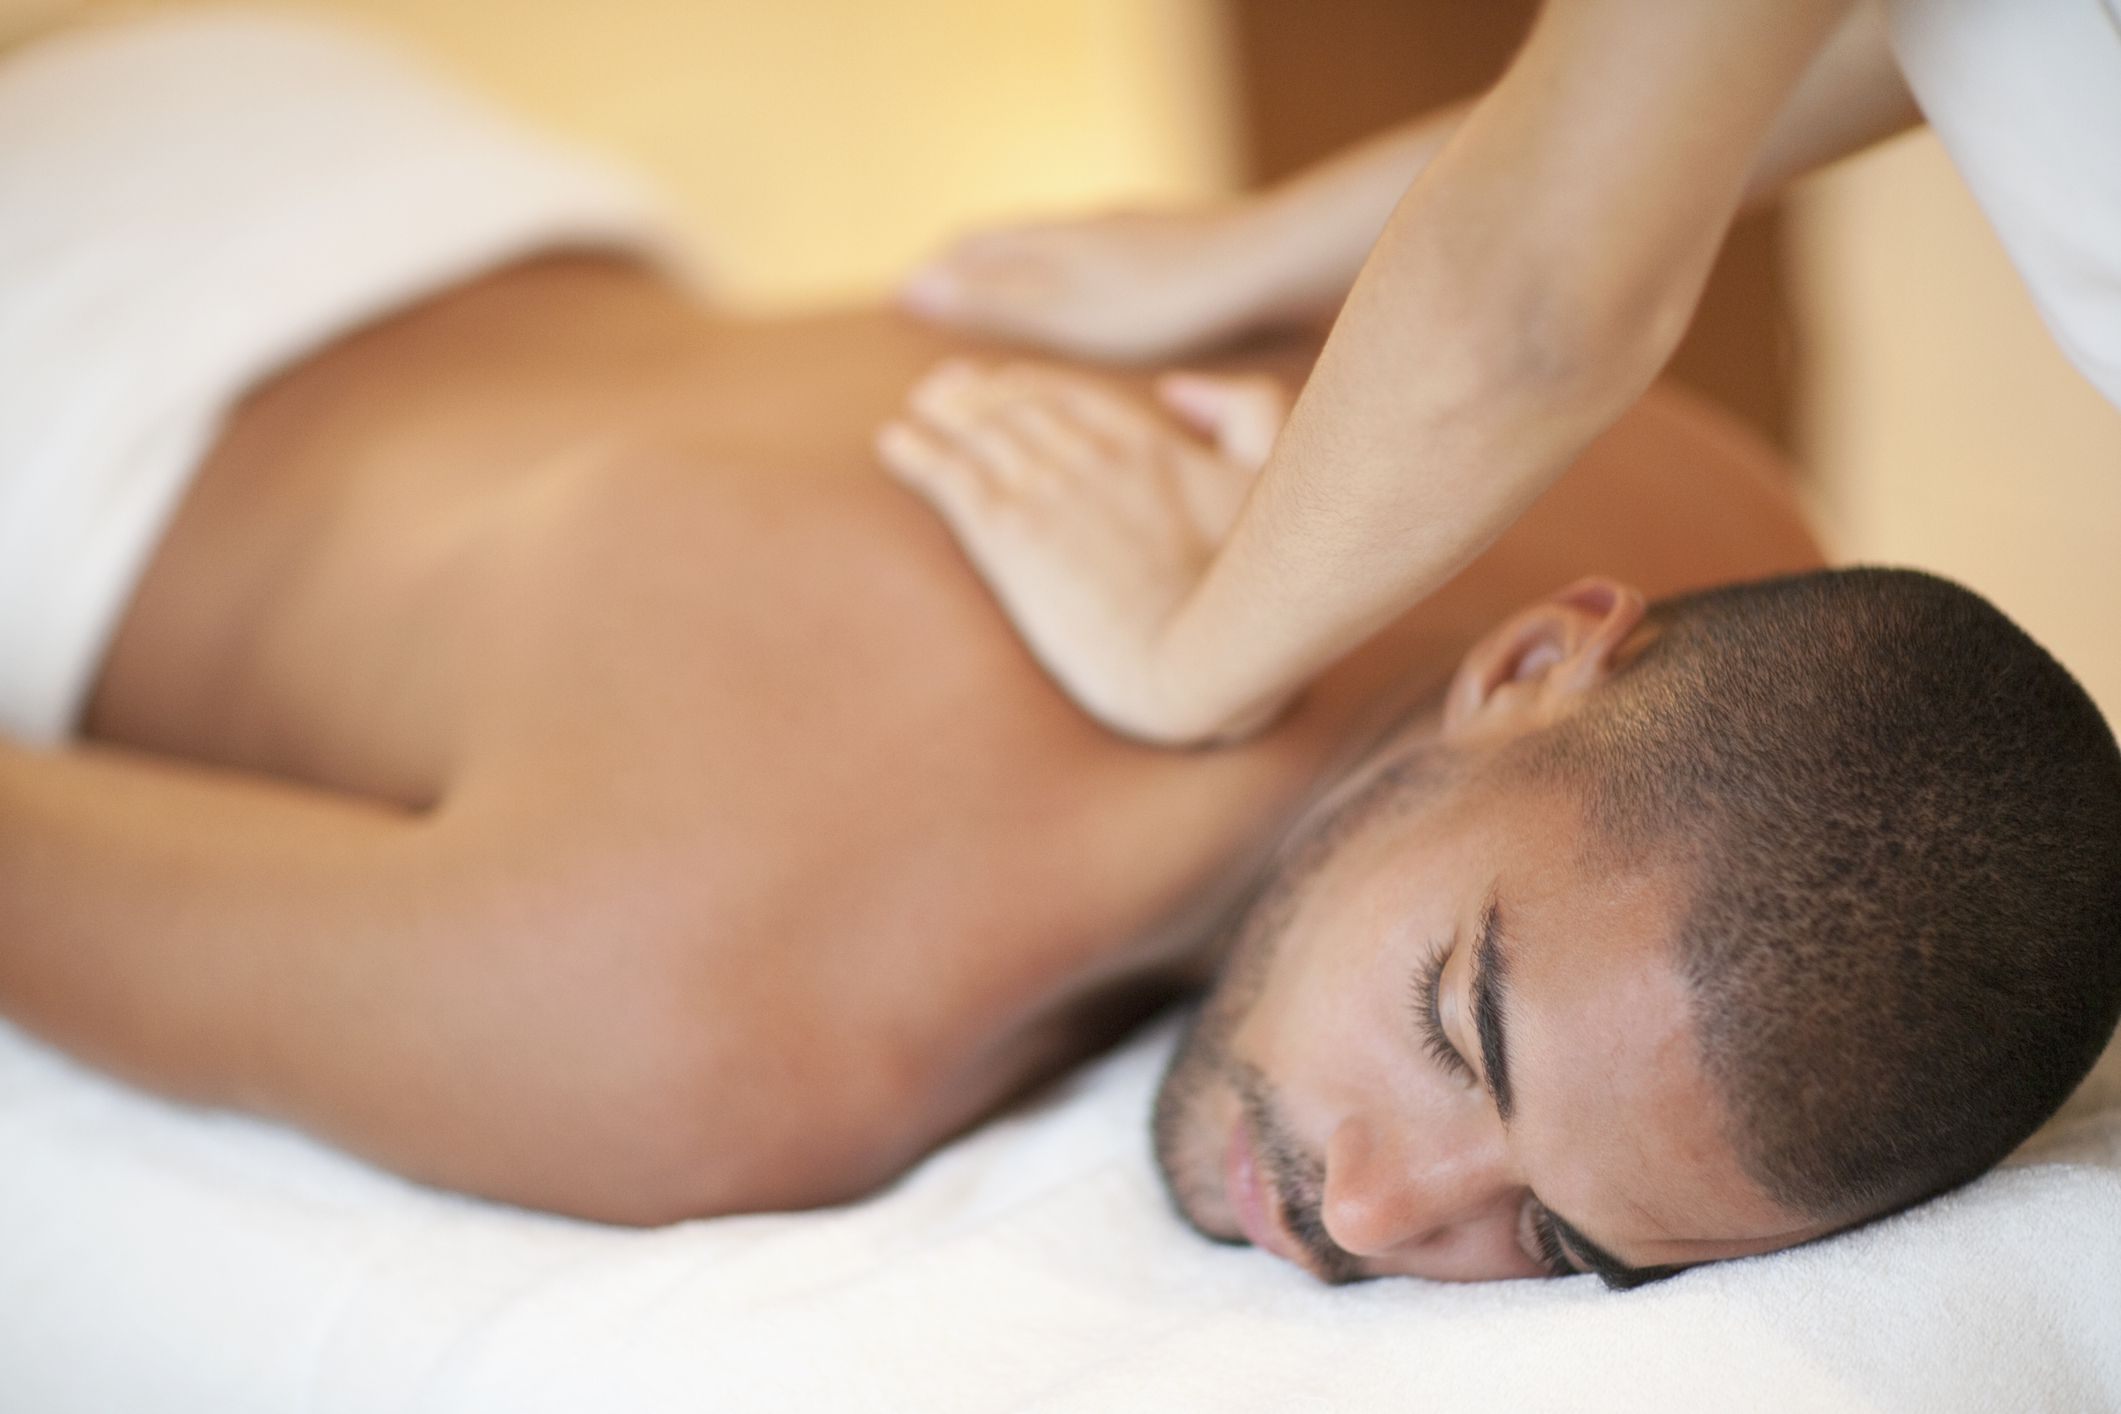 Reflexology Massage - The Exact Opposite Way